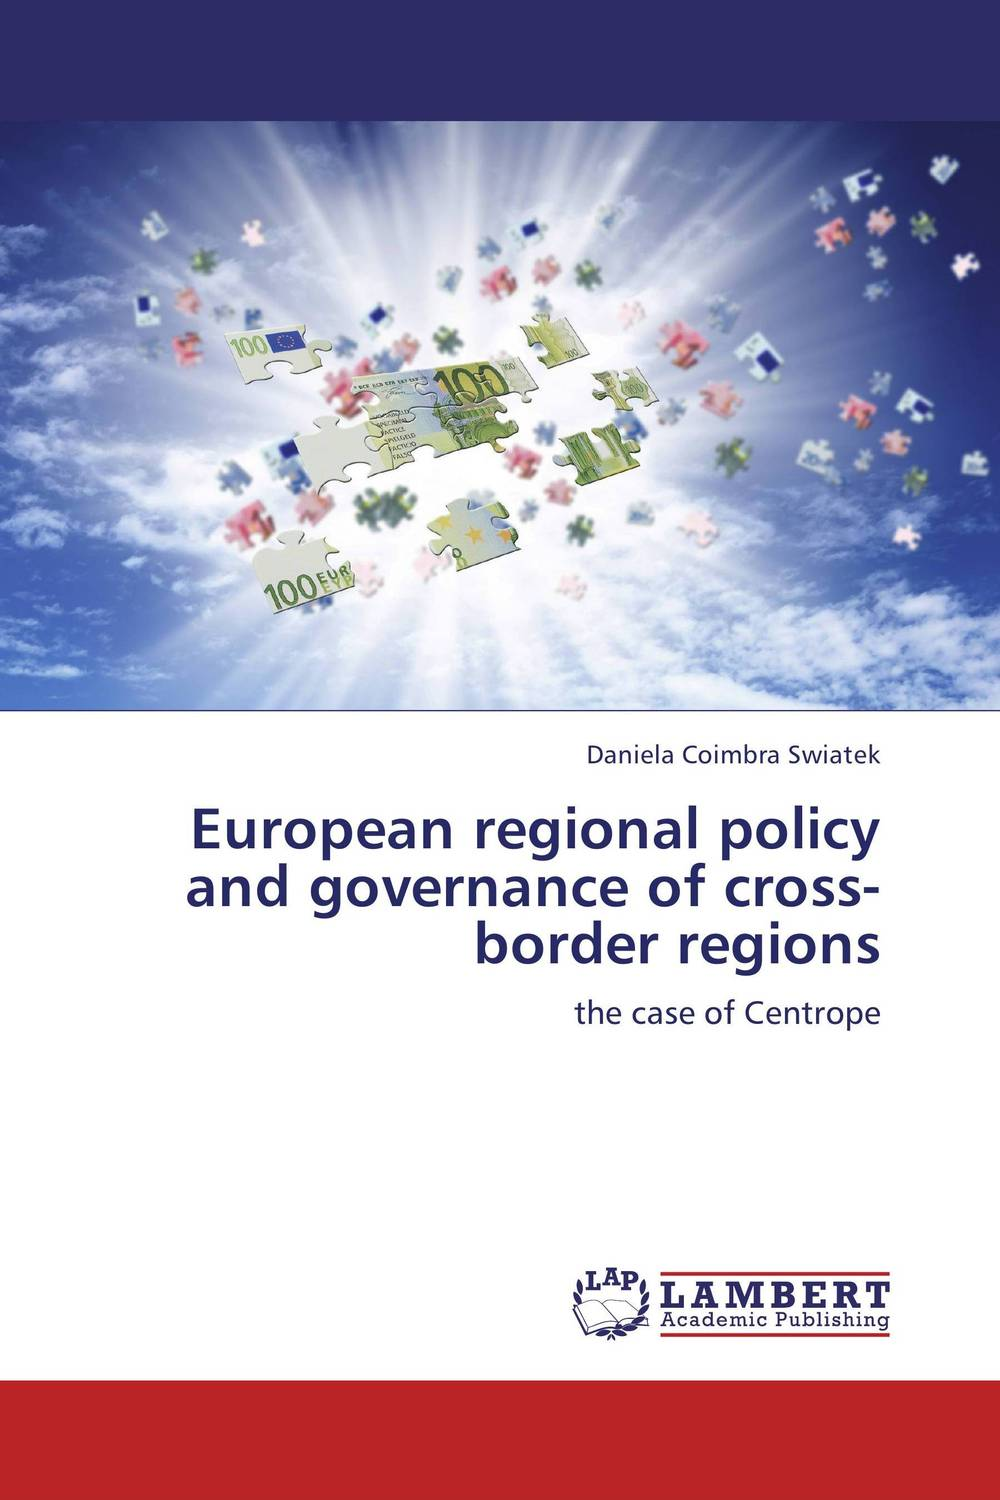 European regional policy and governance of cross-border regions laurens j van mourik the process of cross border entrepreneurship